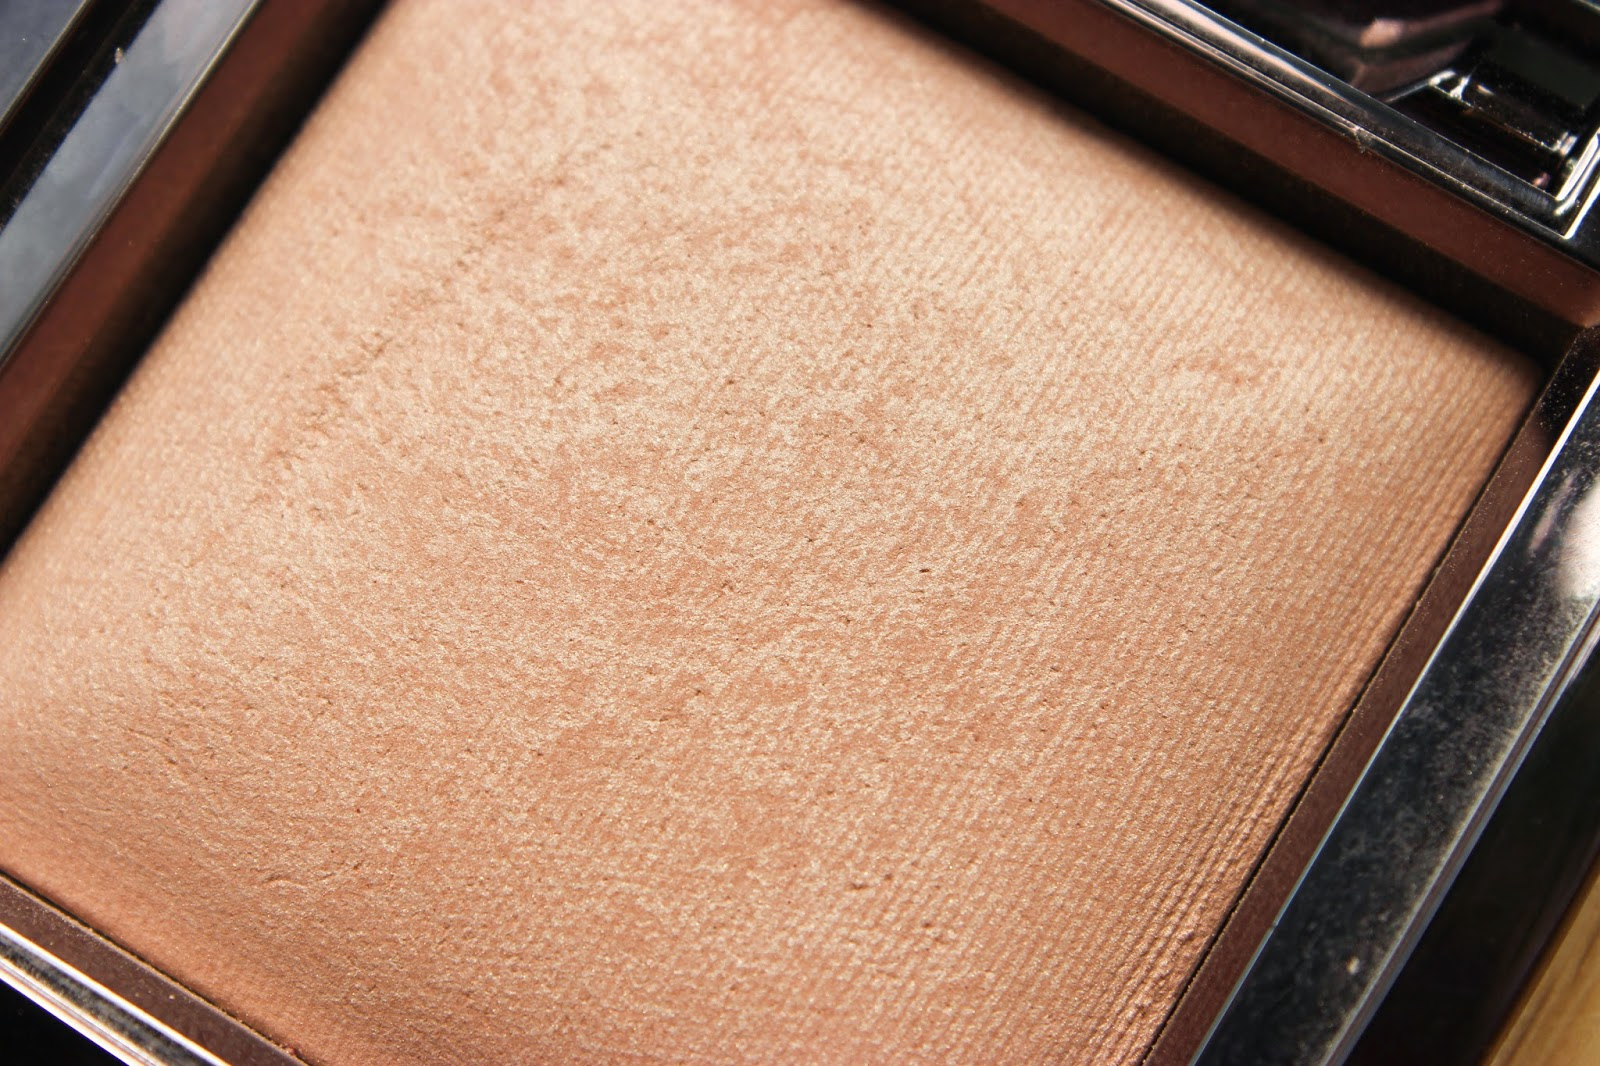 Hourglass Ambient Lighting Powder Radiant Light